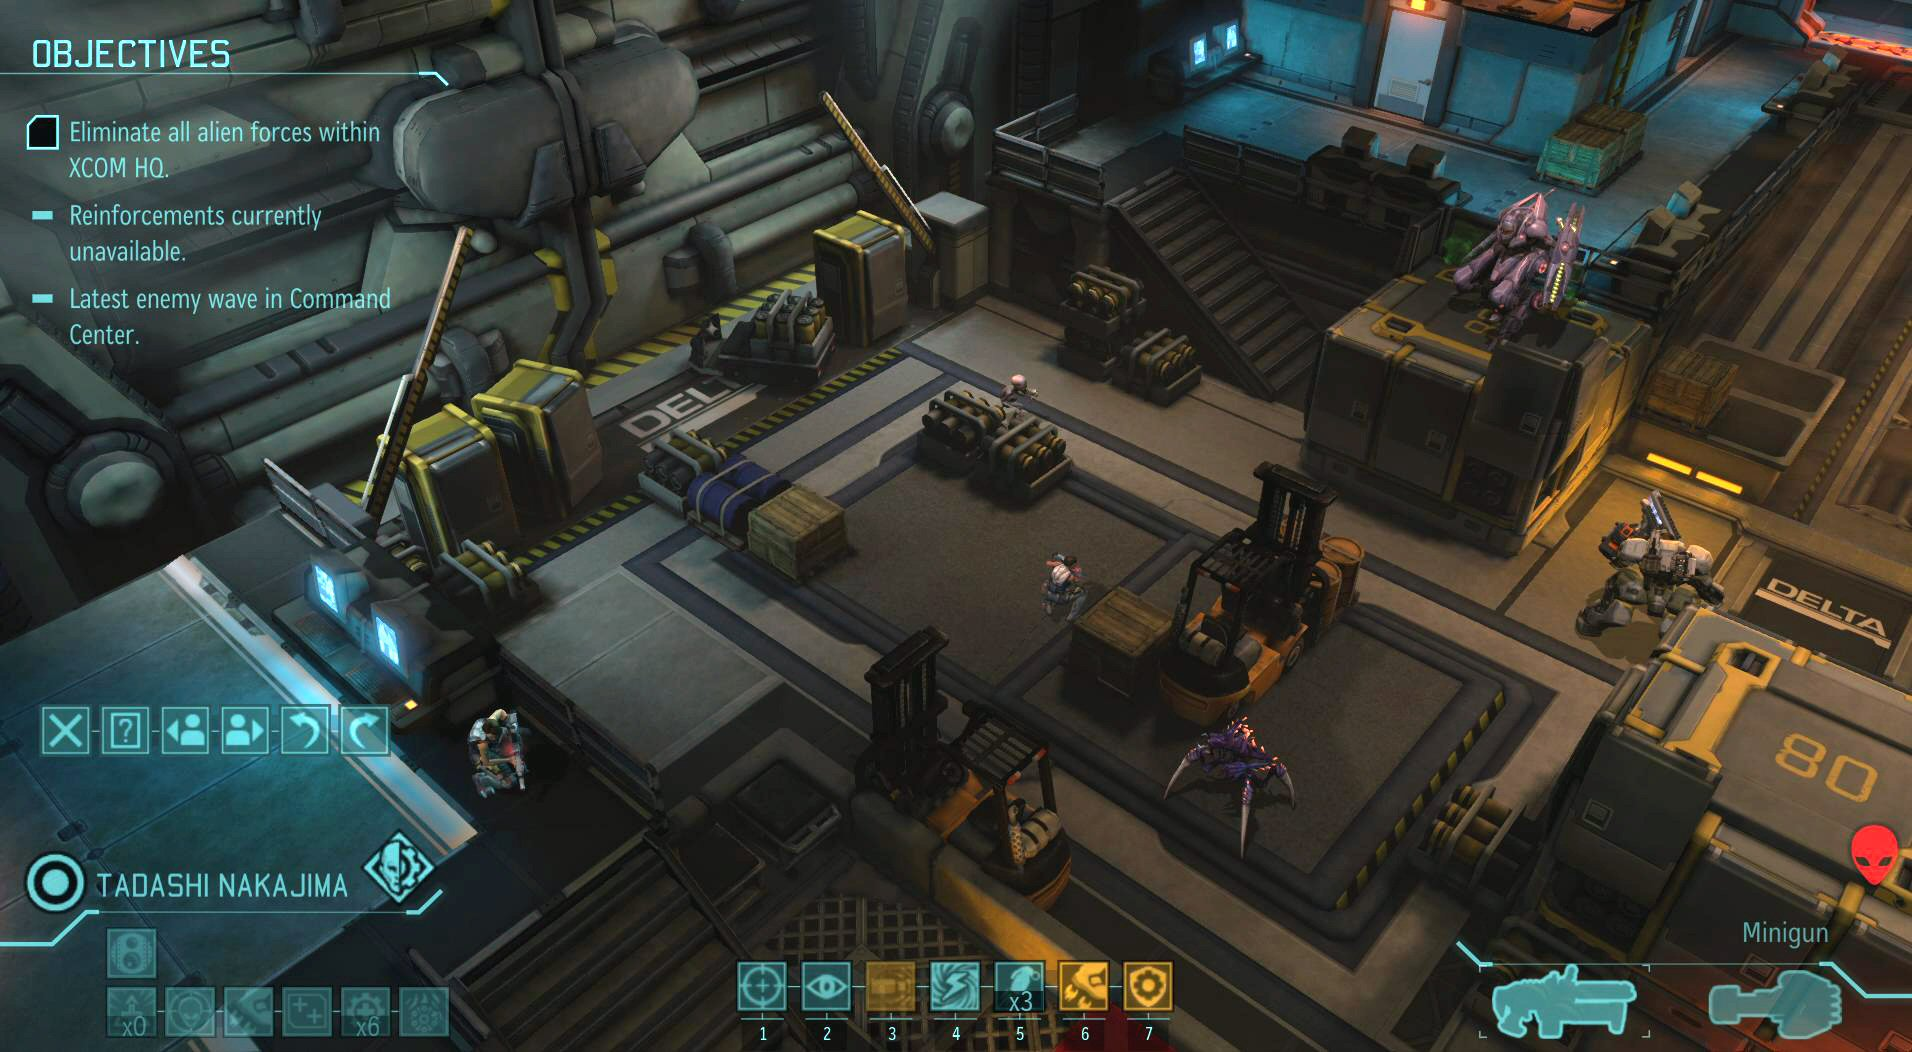 XCOM Enemy Within Confirmed Enemy Is Inside The Base